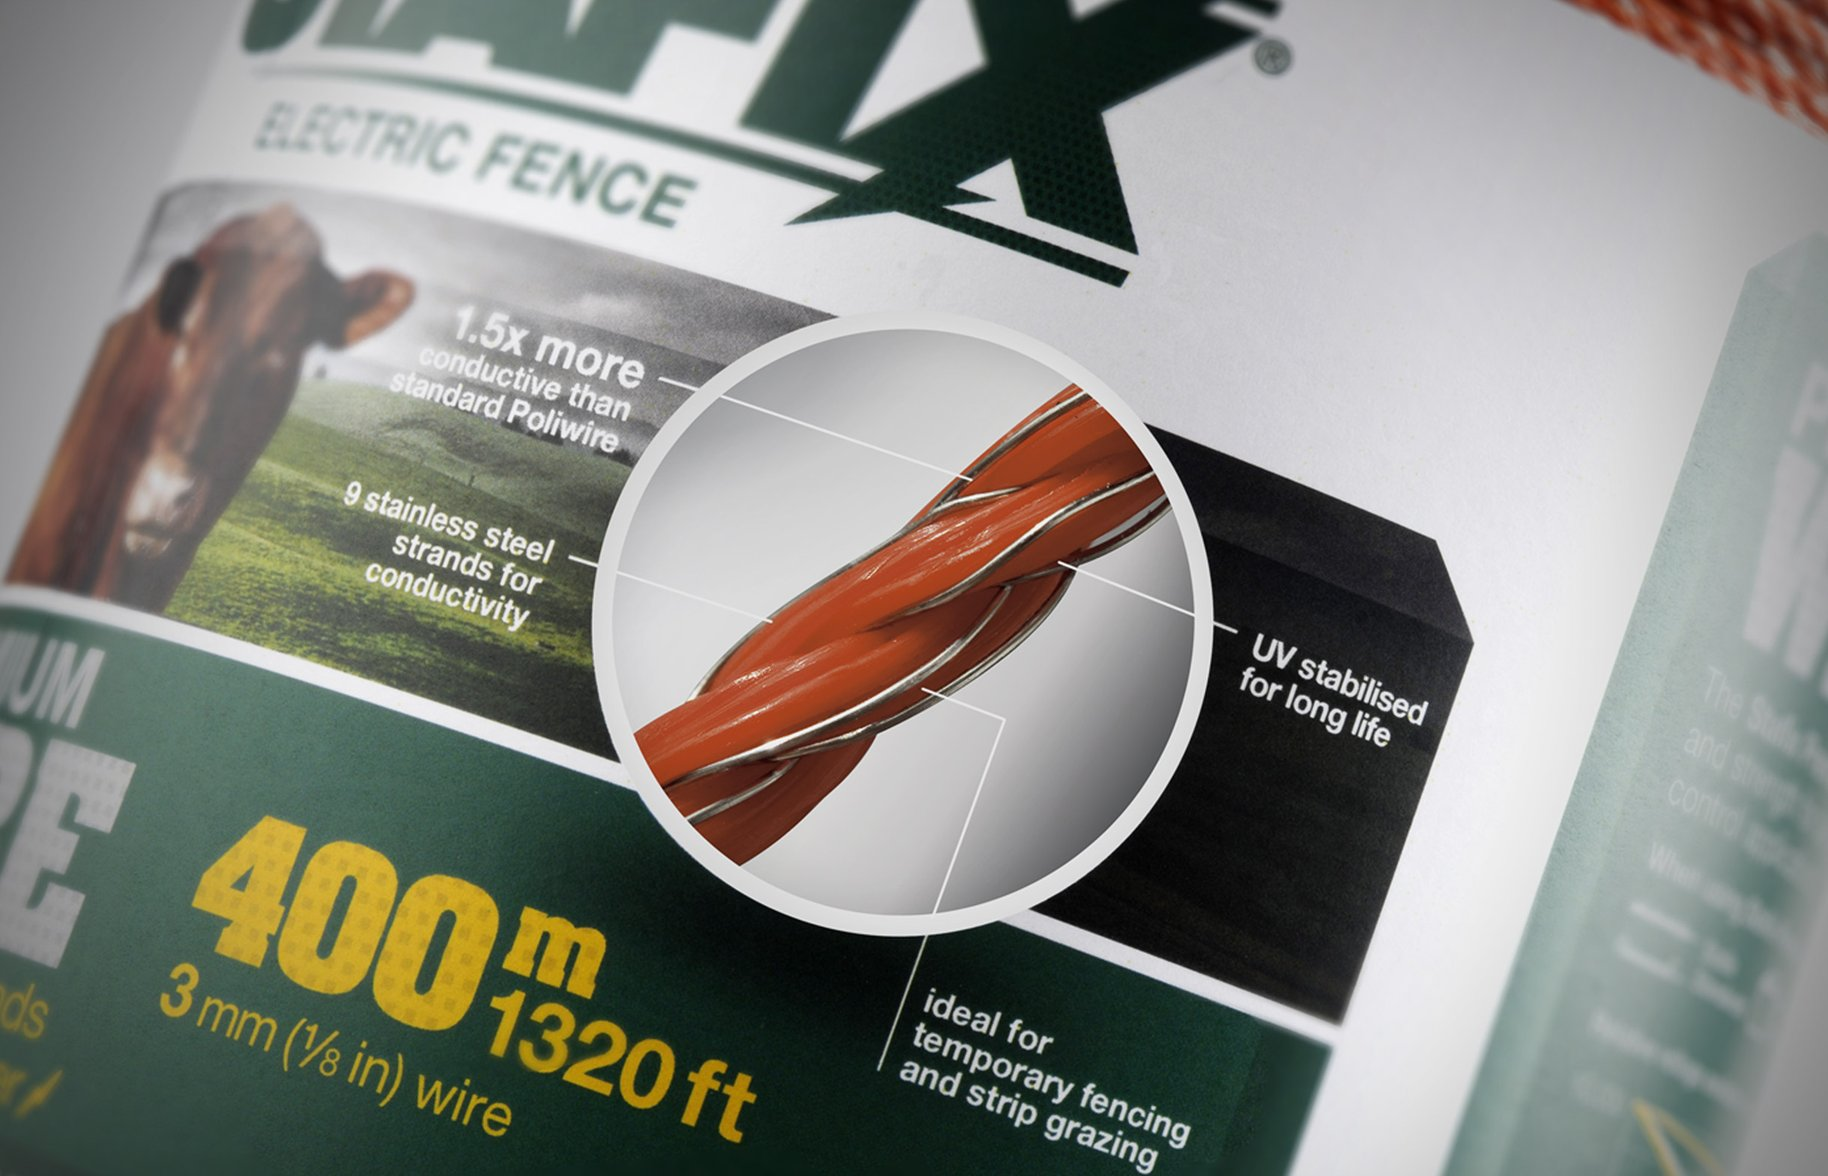 Stafix electric fence packaging details